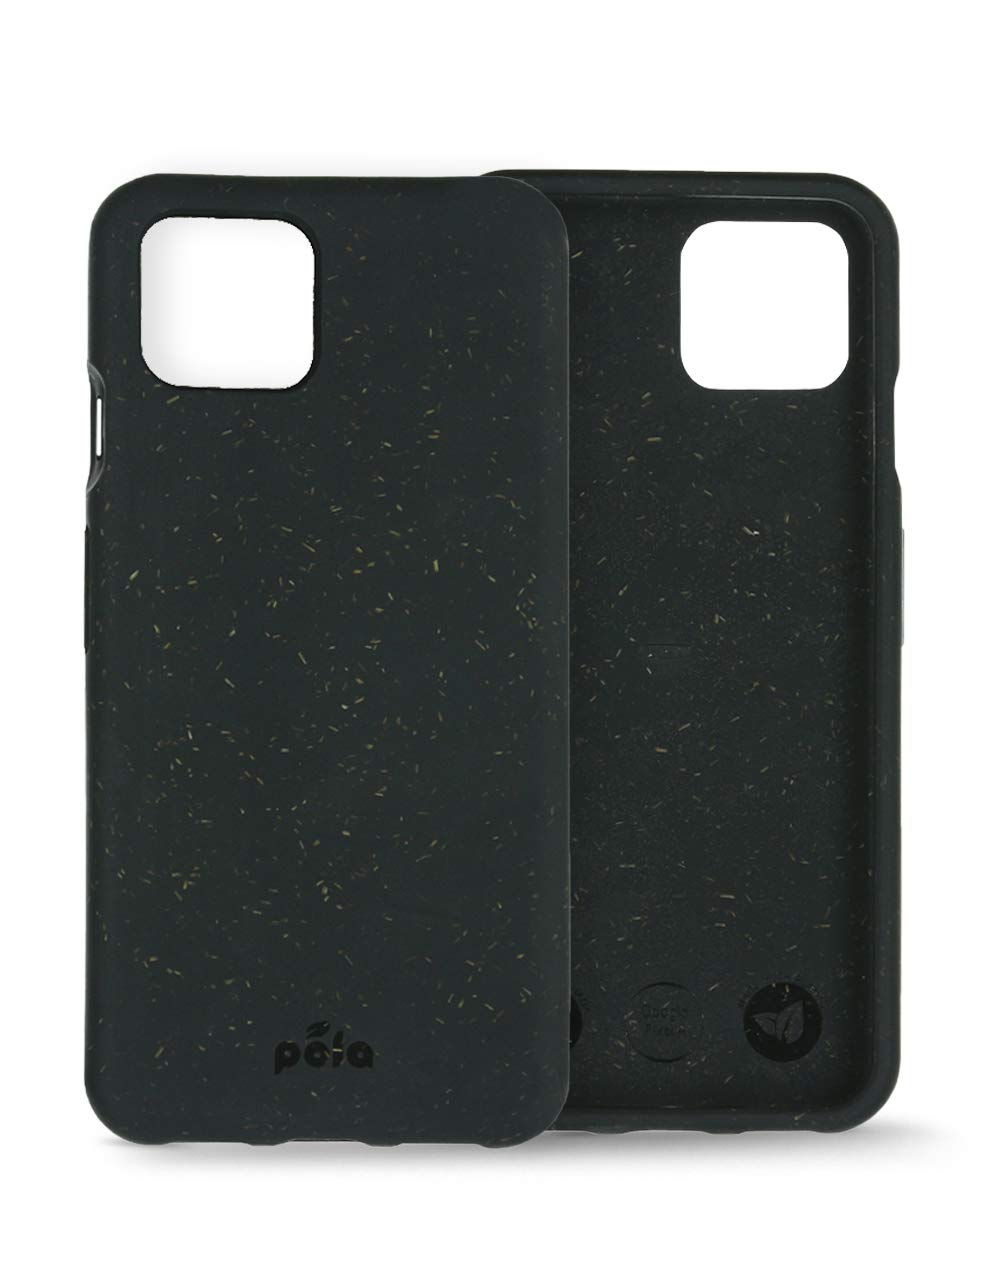 Pela: Phone Case for Google Pixel 4XL - 100% Compostable and Biodegradable - Eco-Friendly - Made from Plants (4XL Black)